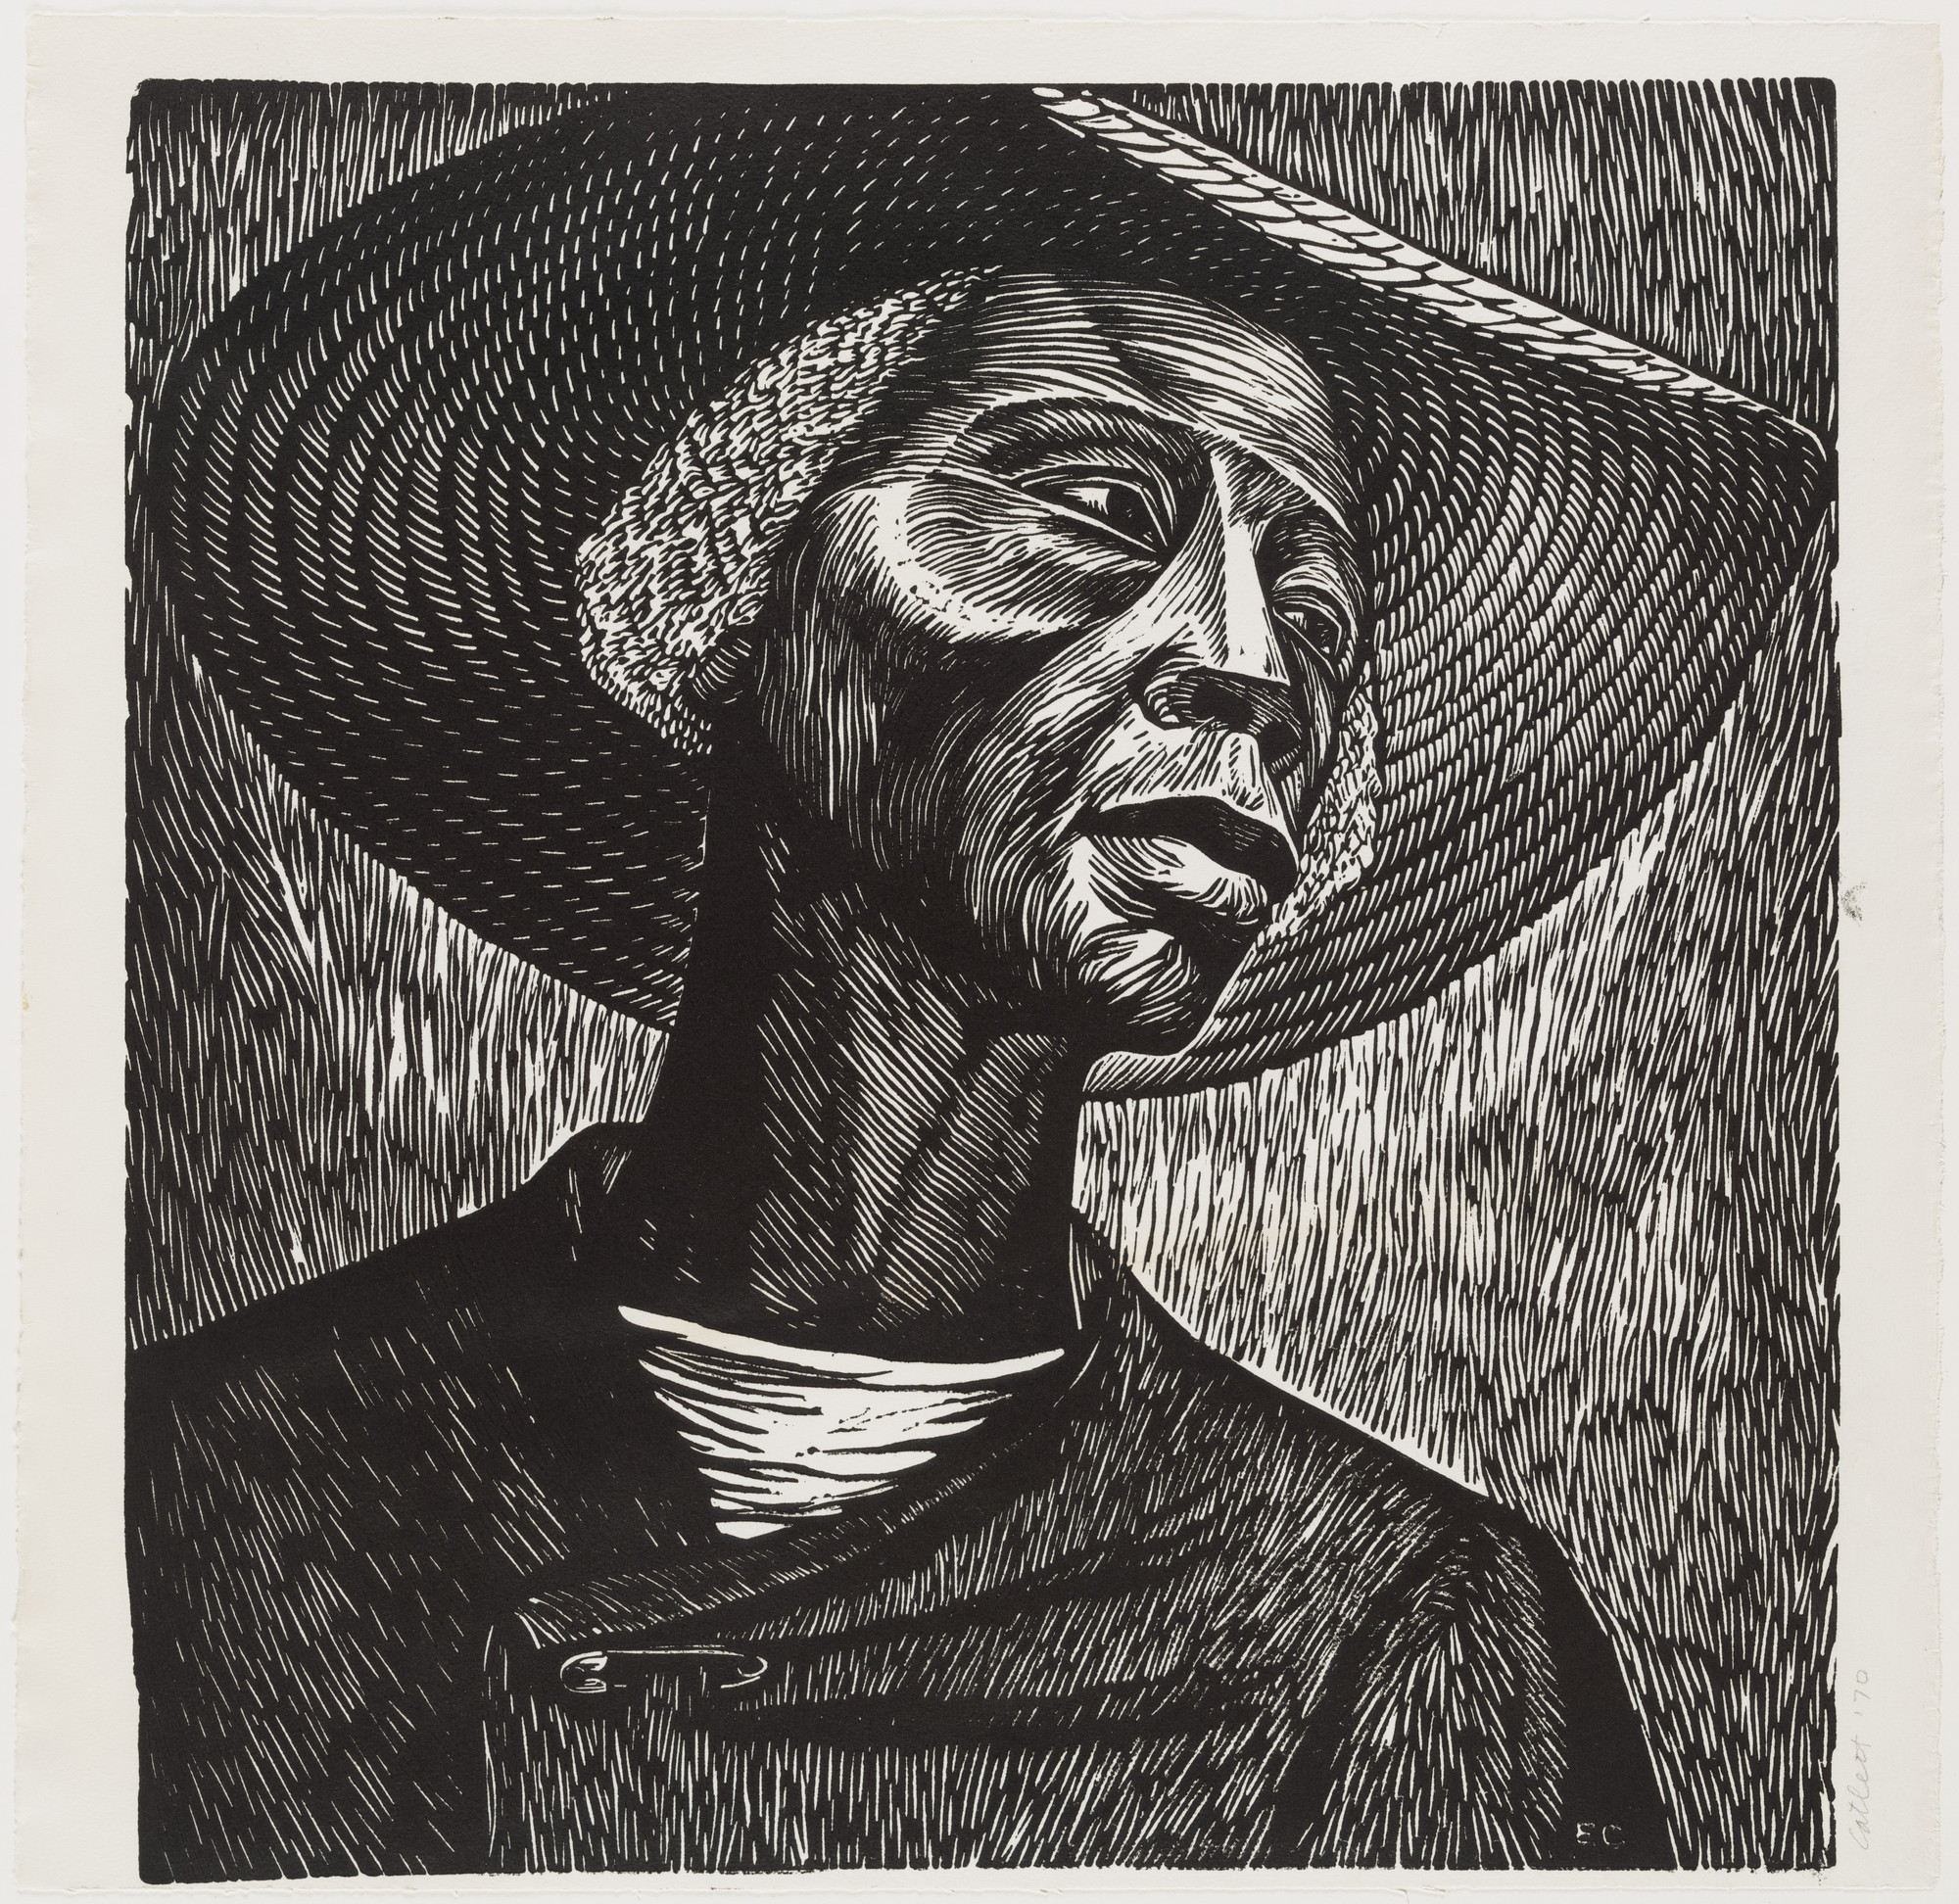 Elizabeth Catlett. Sharecropper. 1952, published 1968–70